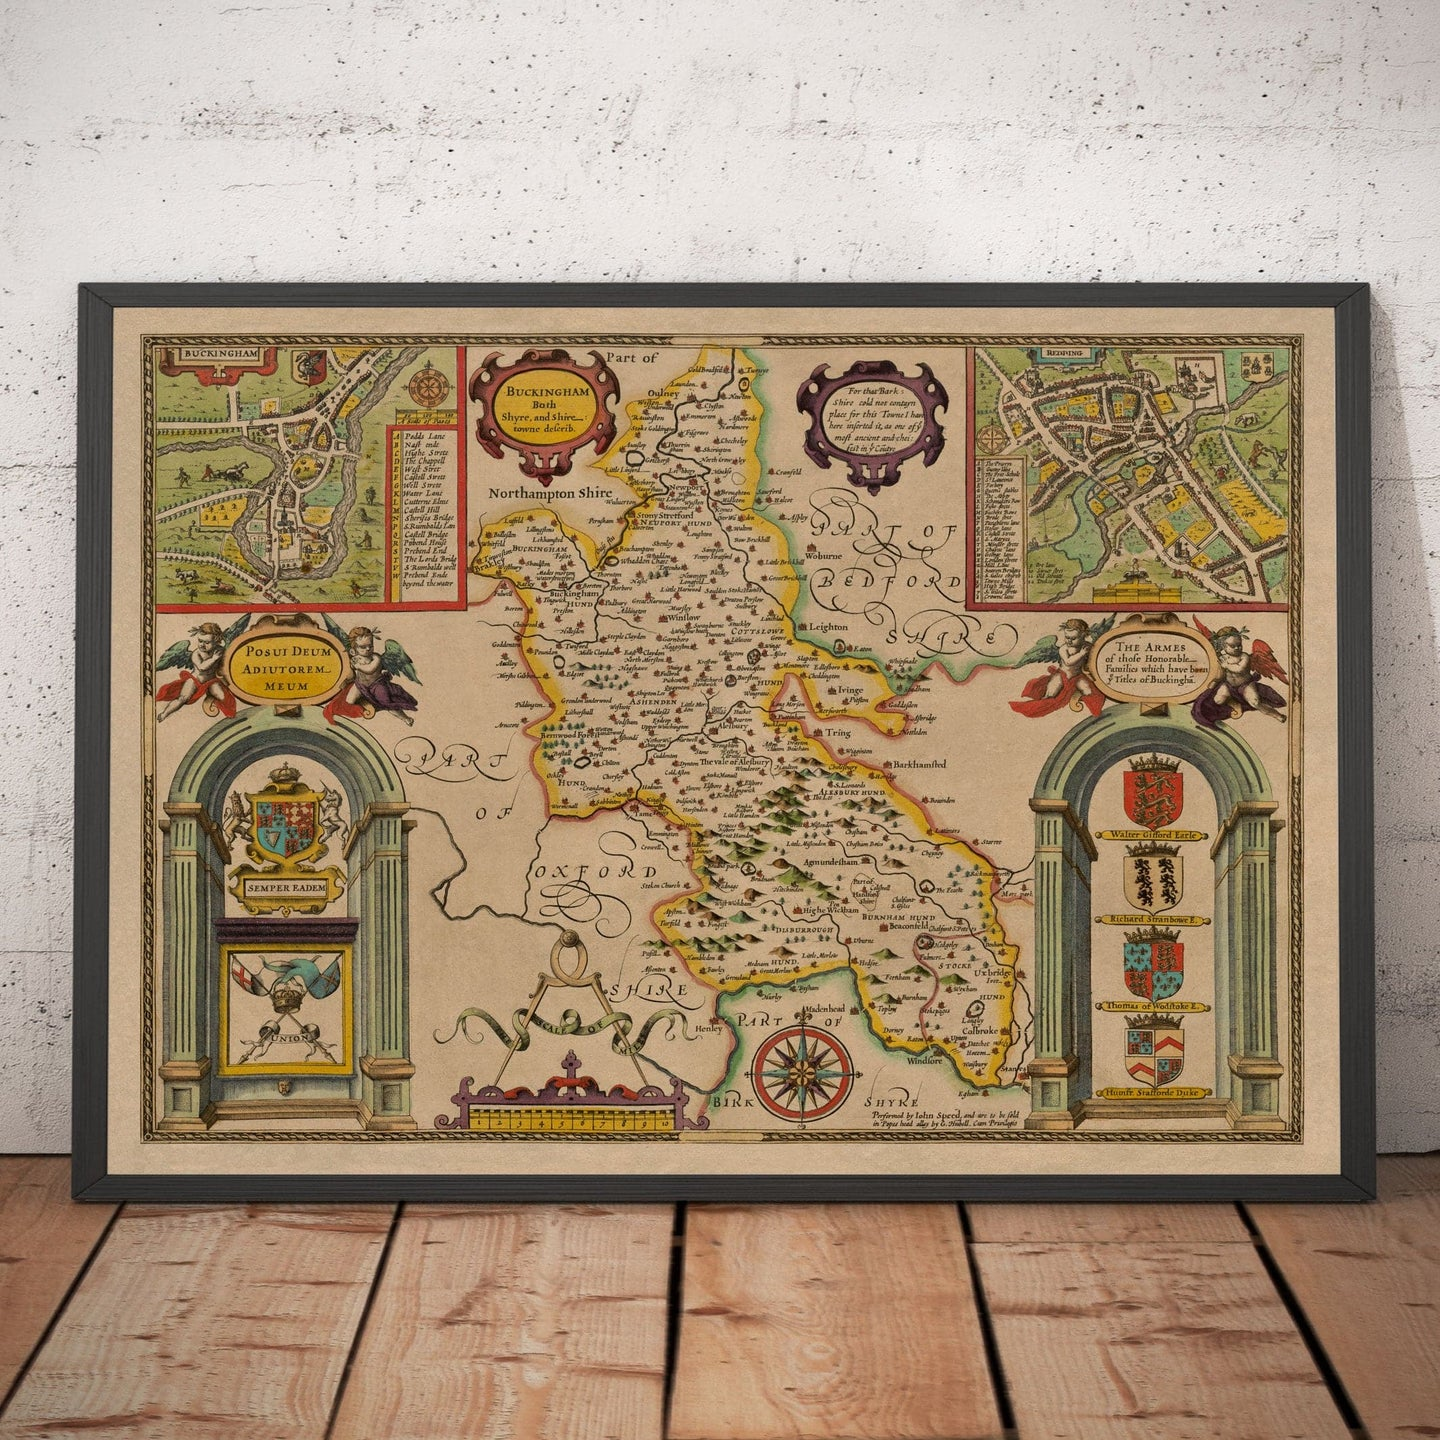 Old Map of Buckinghamshire in 1611 by John Speed - High Wycombe, Amersham, Buckingham, Milton Keynes - Christmas Gift - Vintage Map - Framed, Unframed